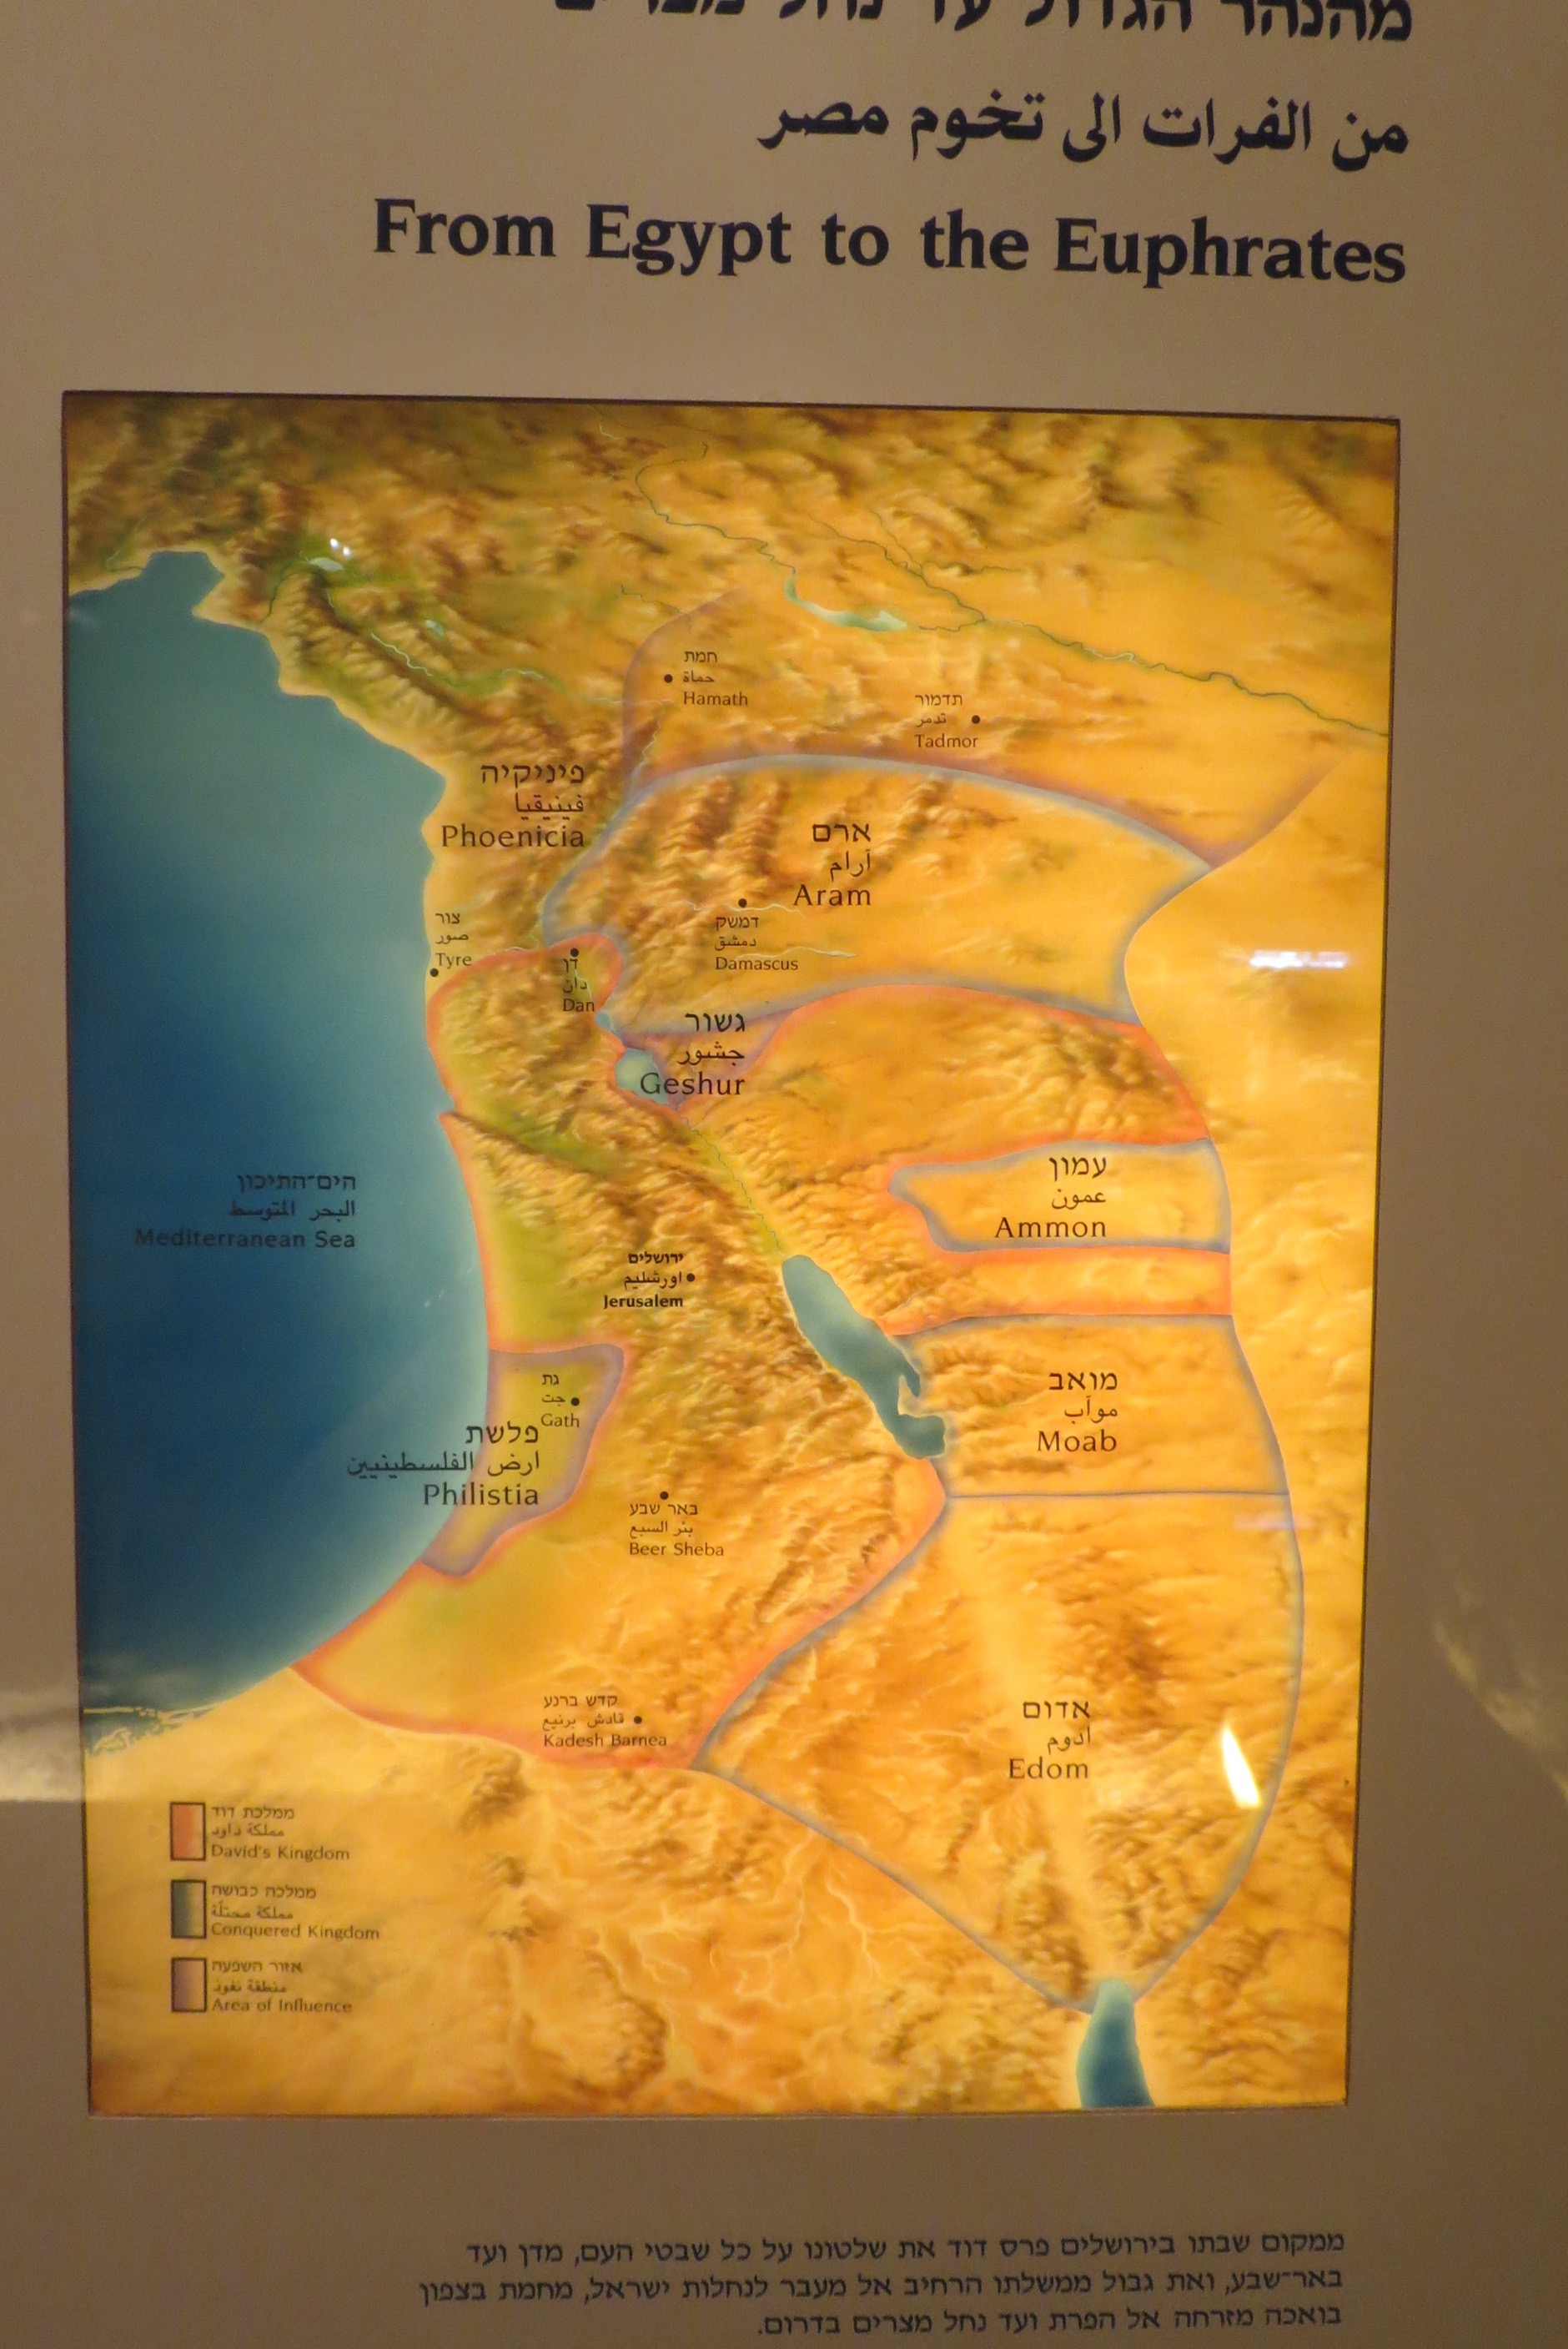 From Egypt to the Euphrates